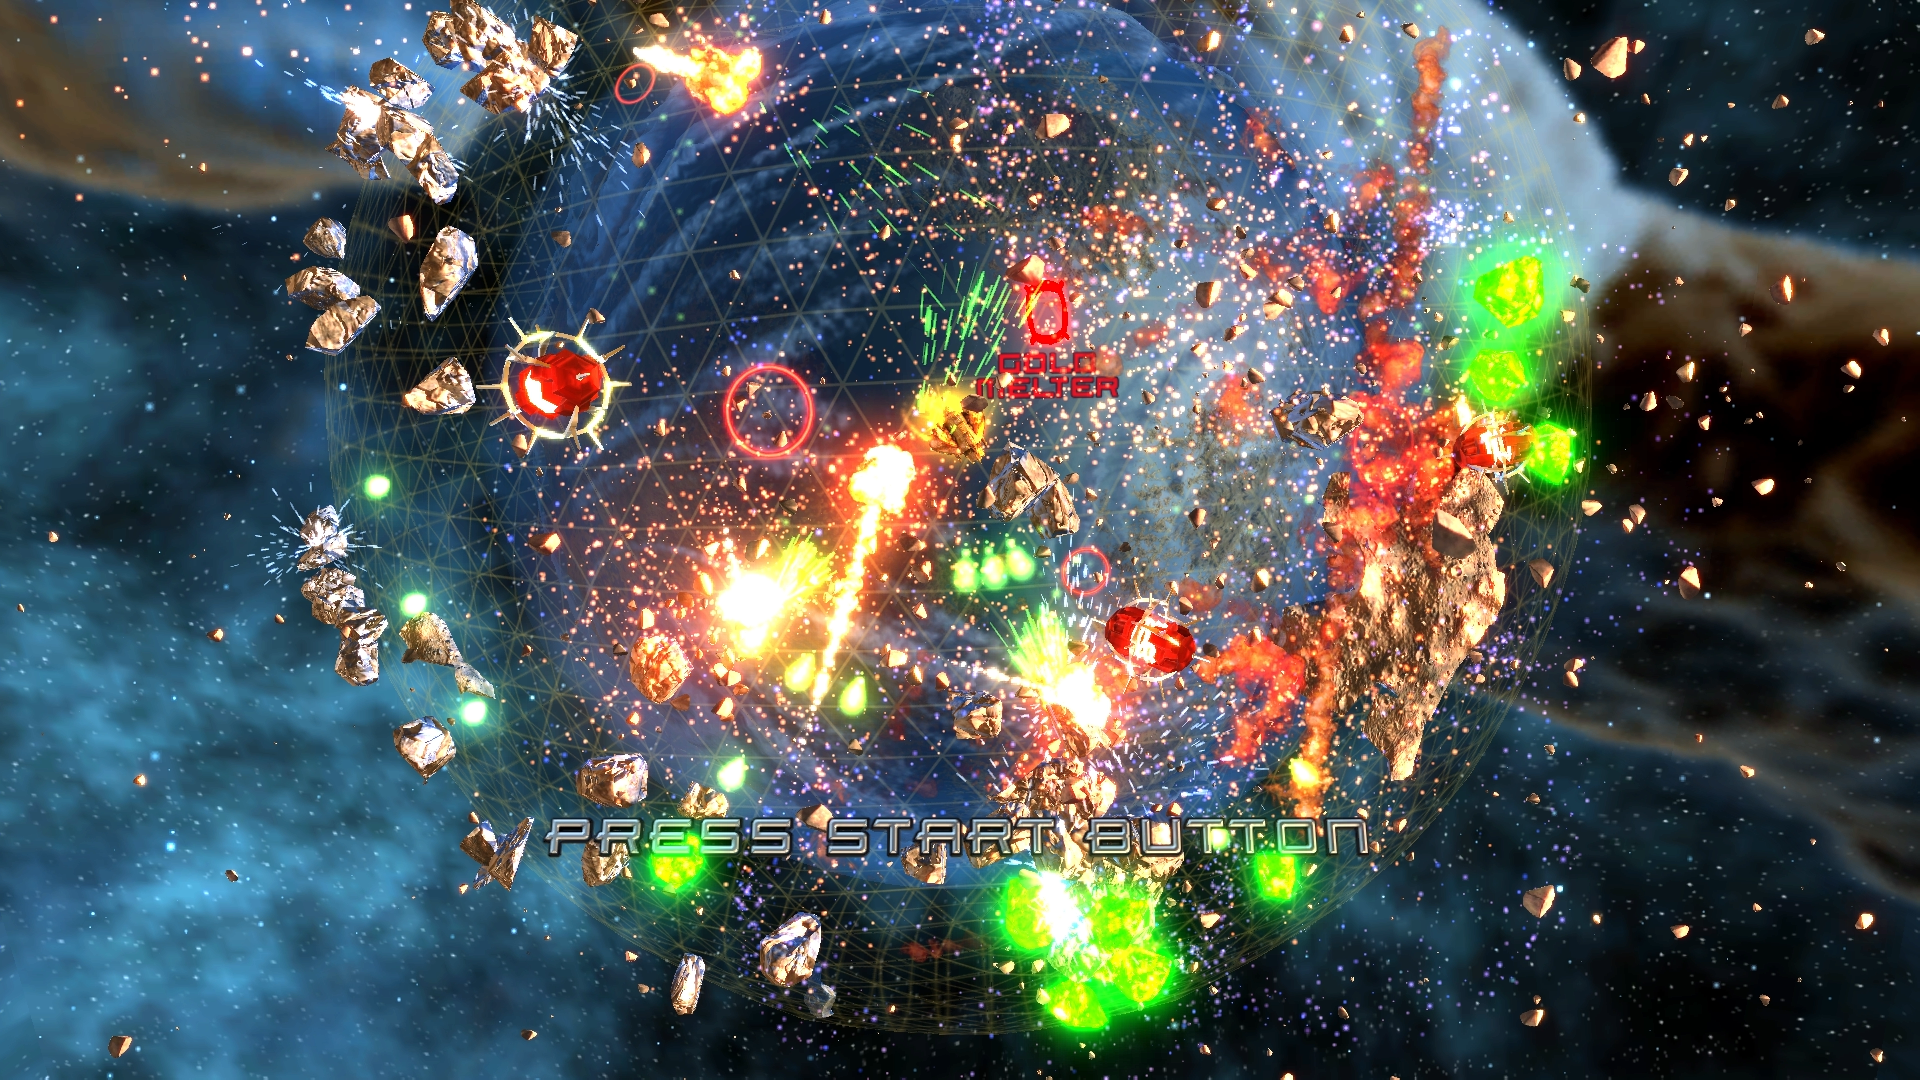 Click image for larger version  Name:Super Stardust HD RGB32.png Views:2714 Size:3.02 MB ID:35693